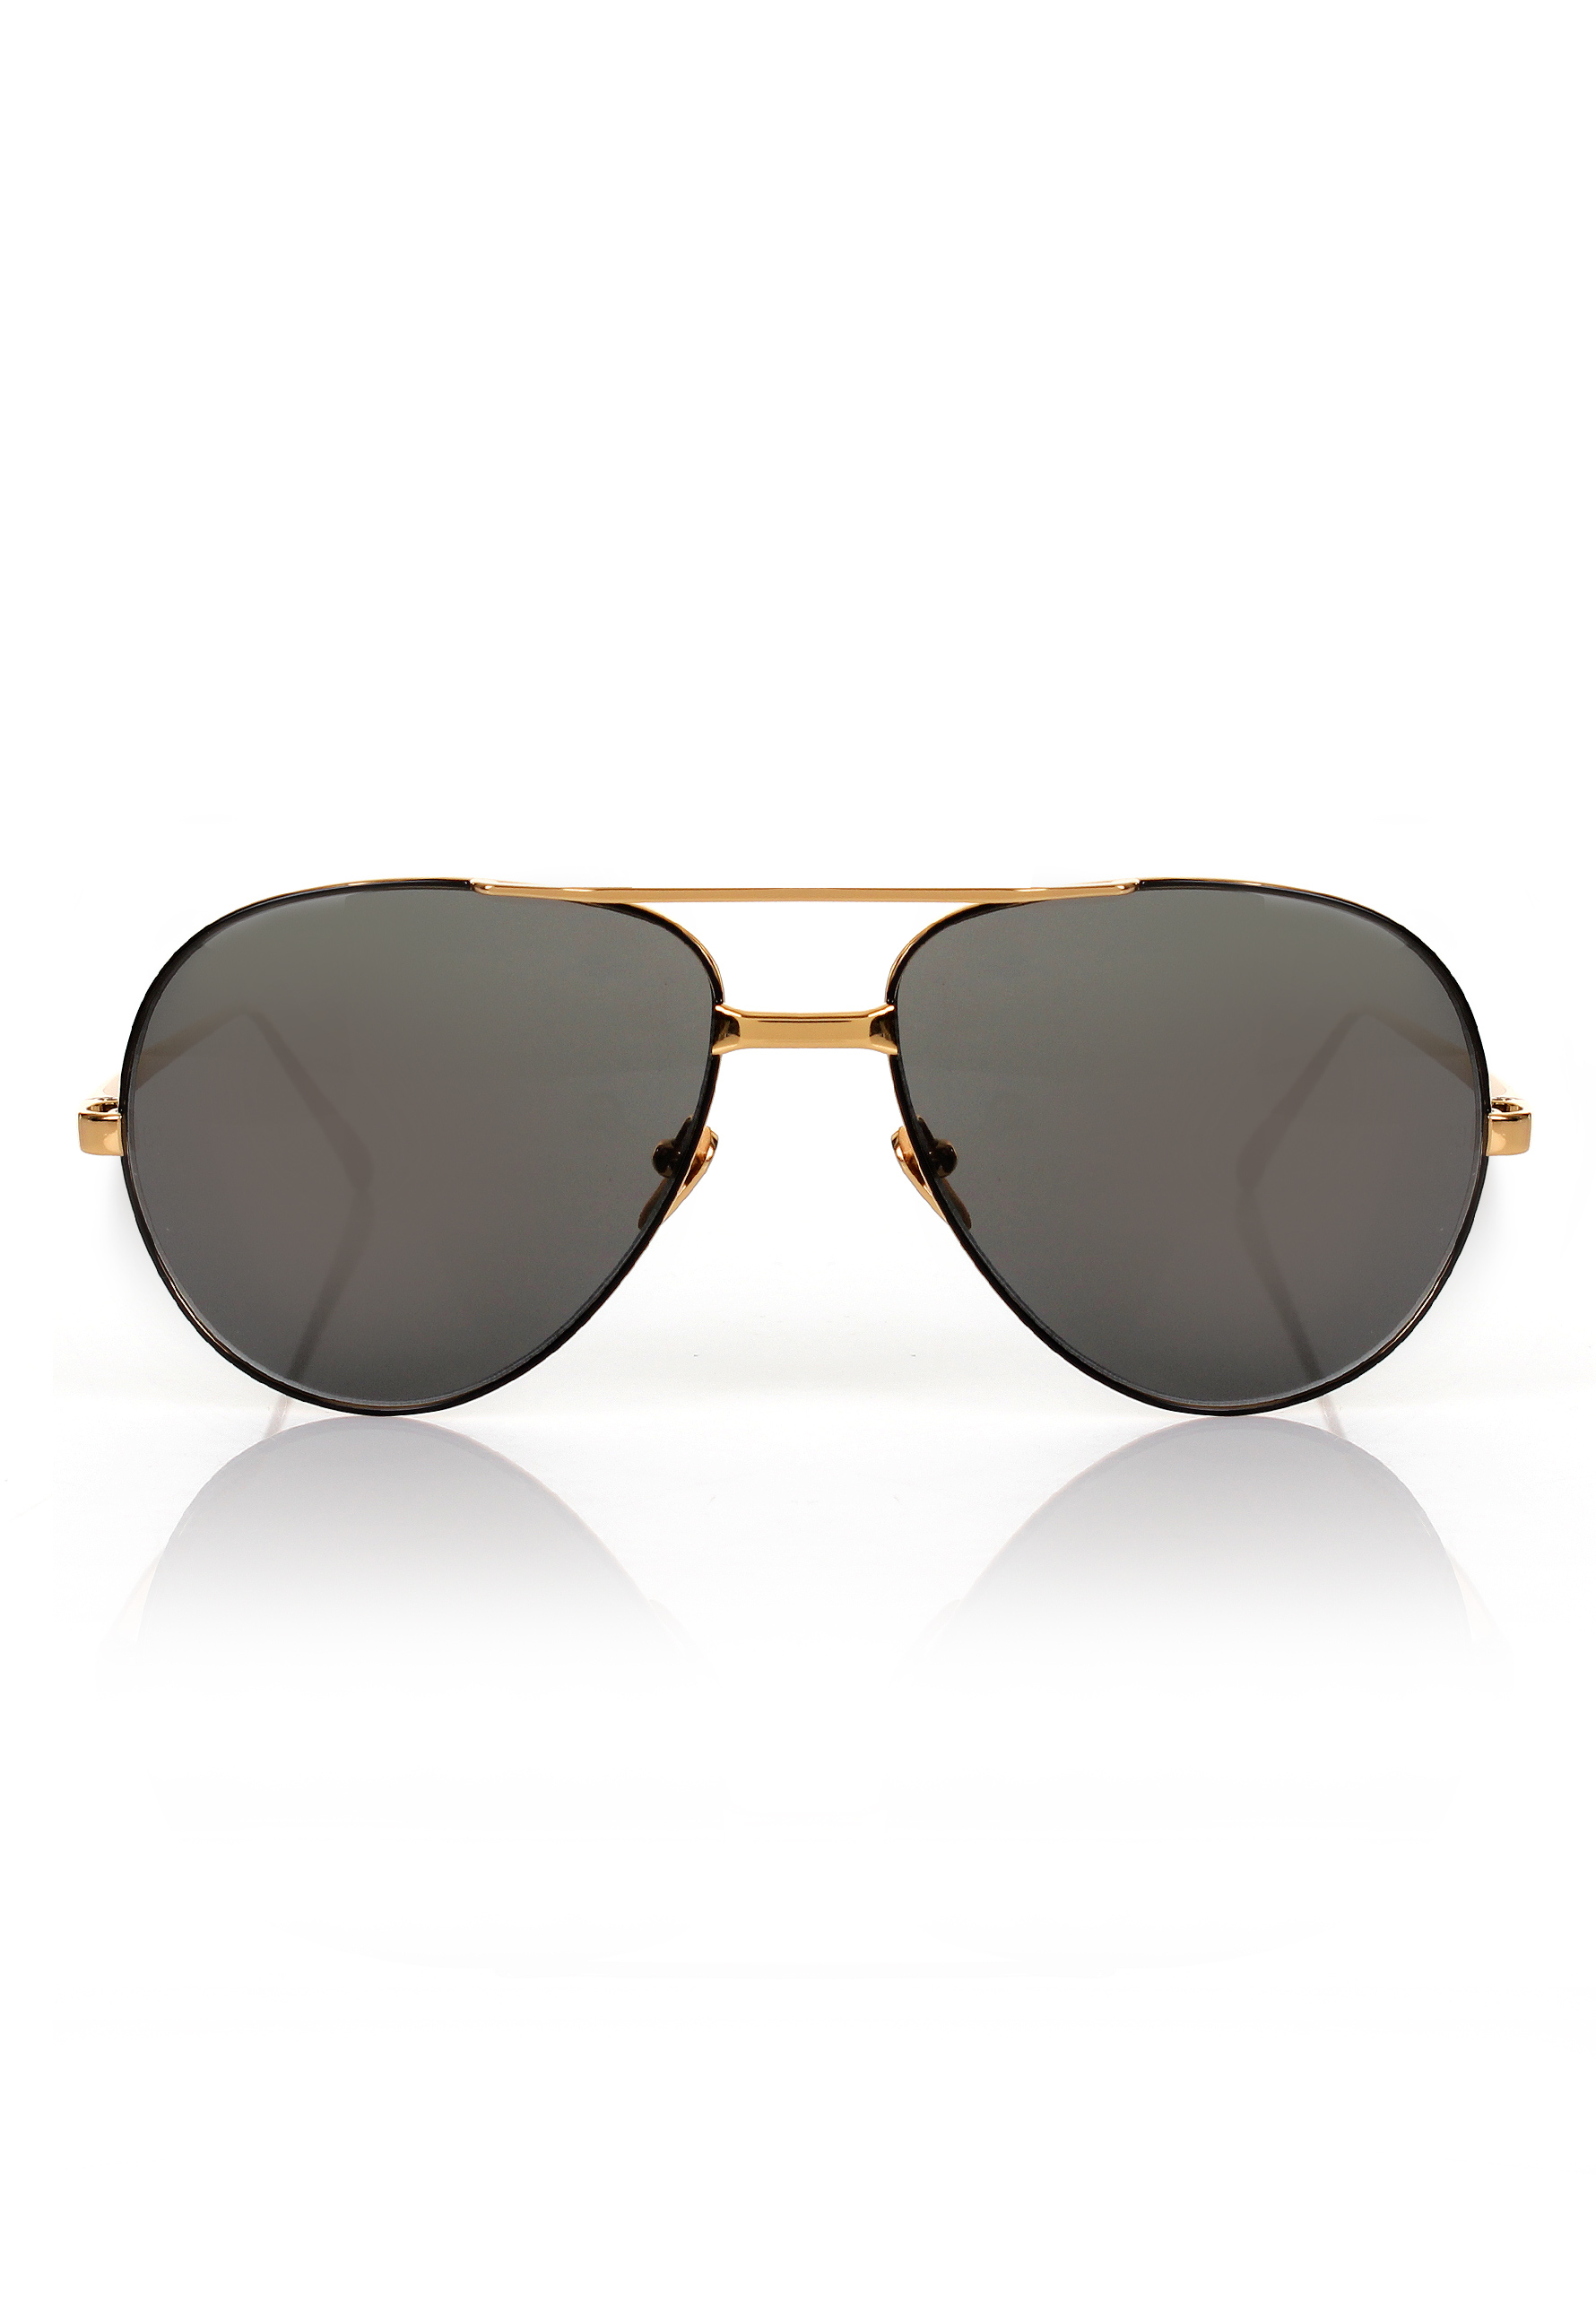 Linda Farrow Aviator | Linda Farrow Uk | Linda Farrow Sunglasses